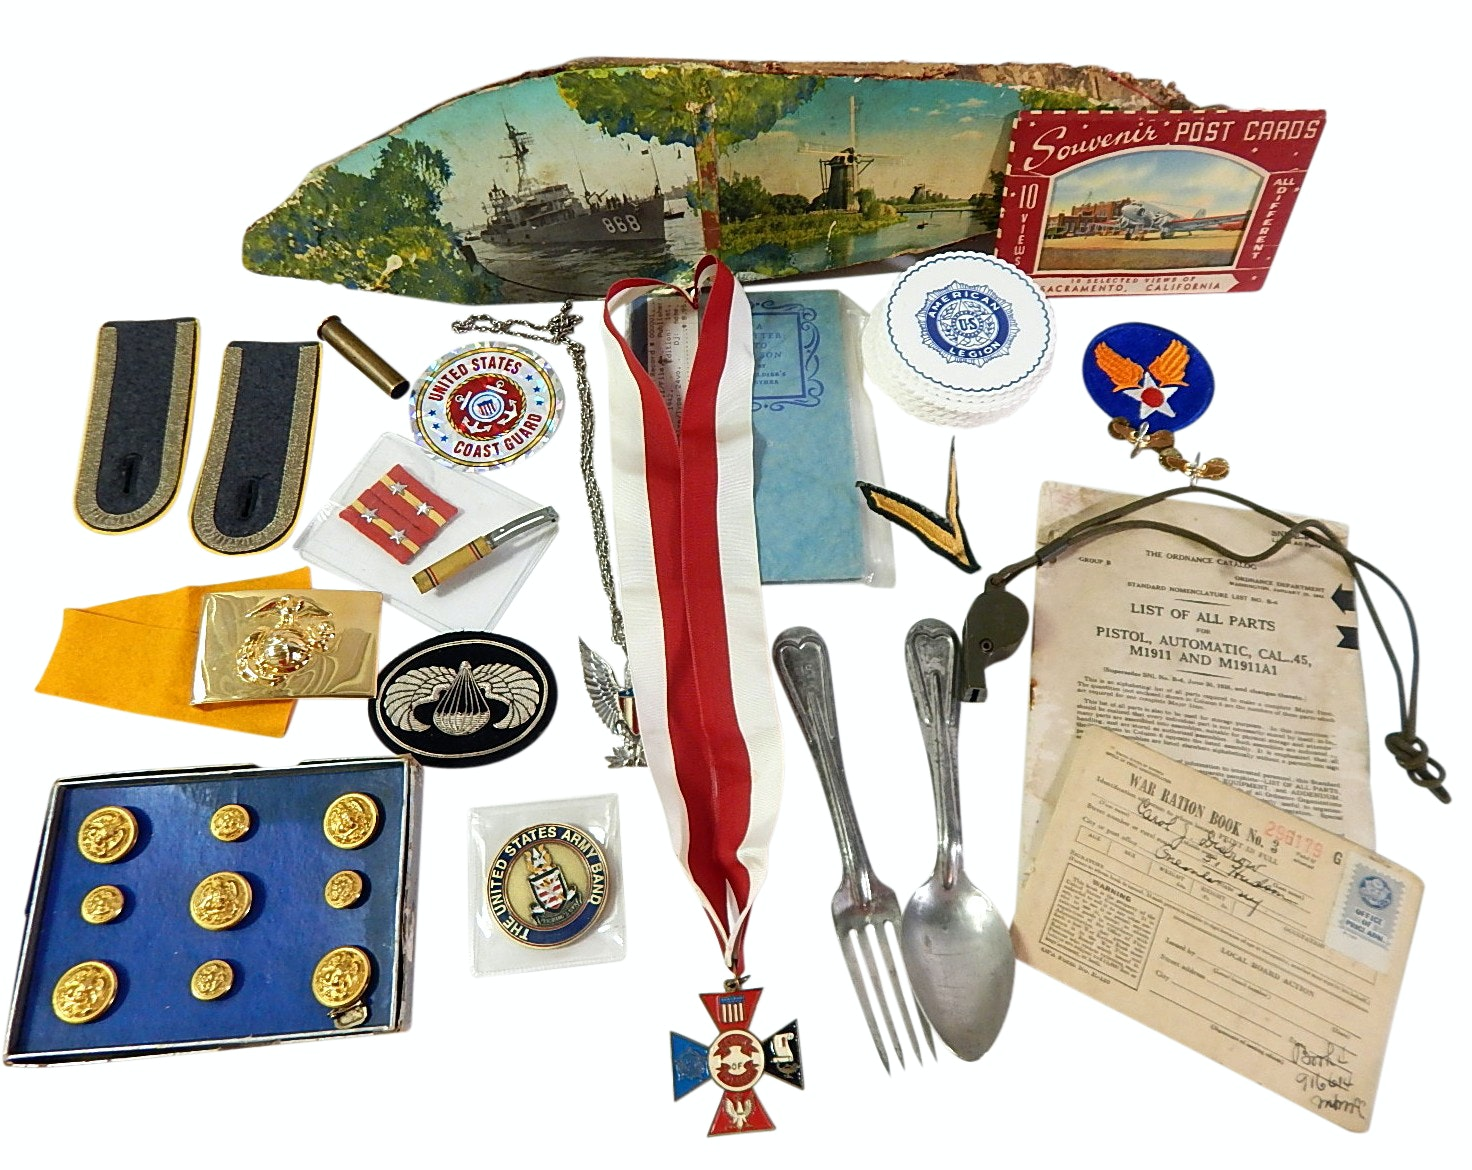 Military Collectibles with Buttons, Rations, Patches, 1918 U.S. Fork/Spoon, More